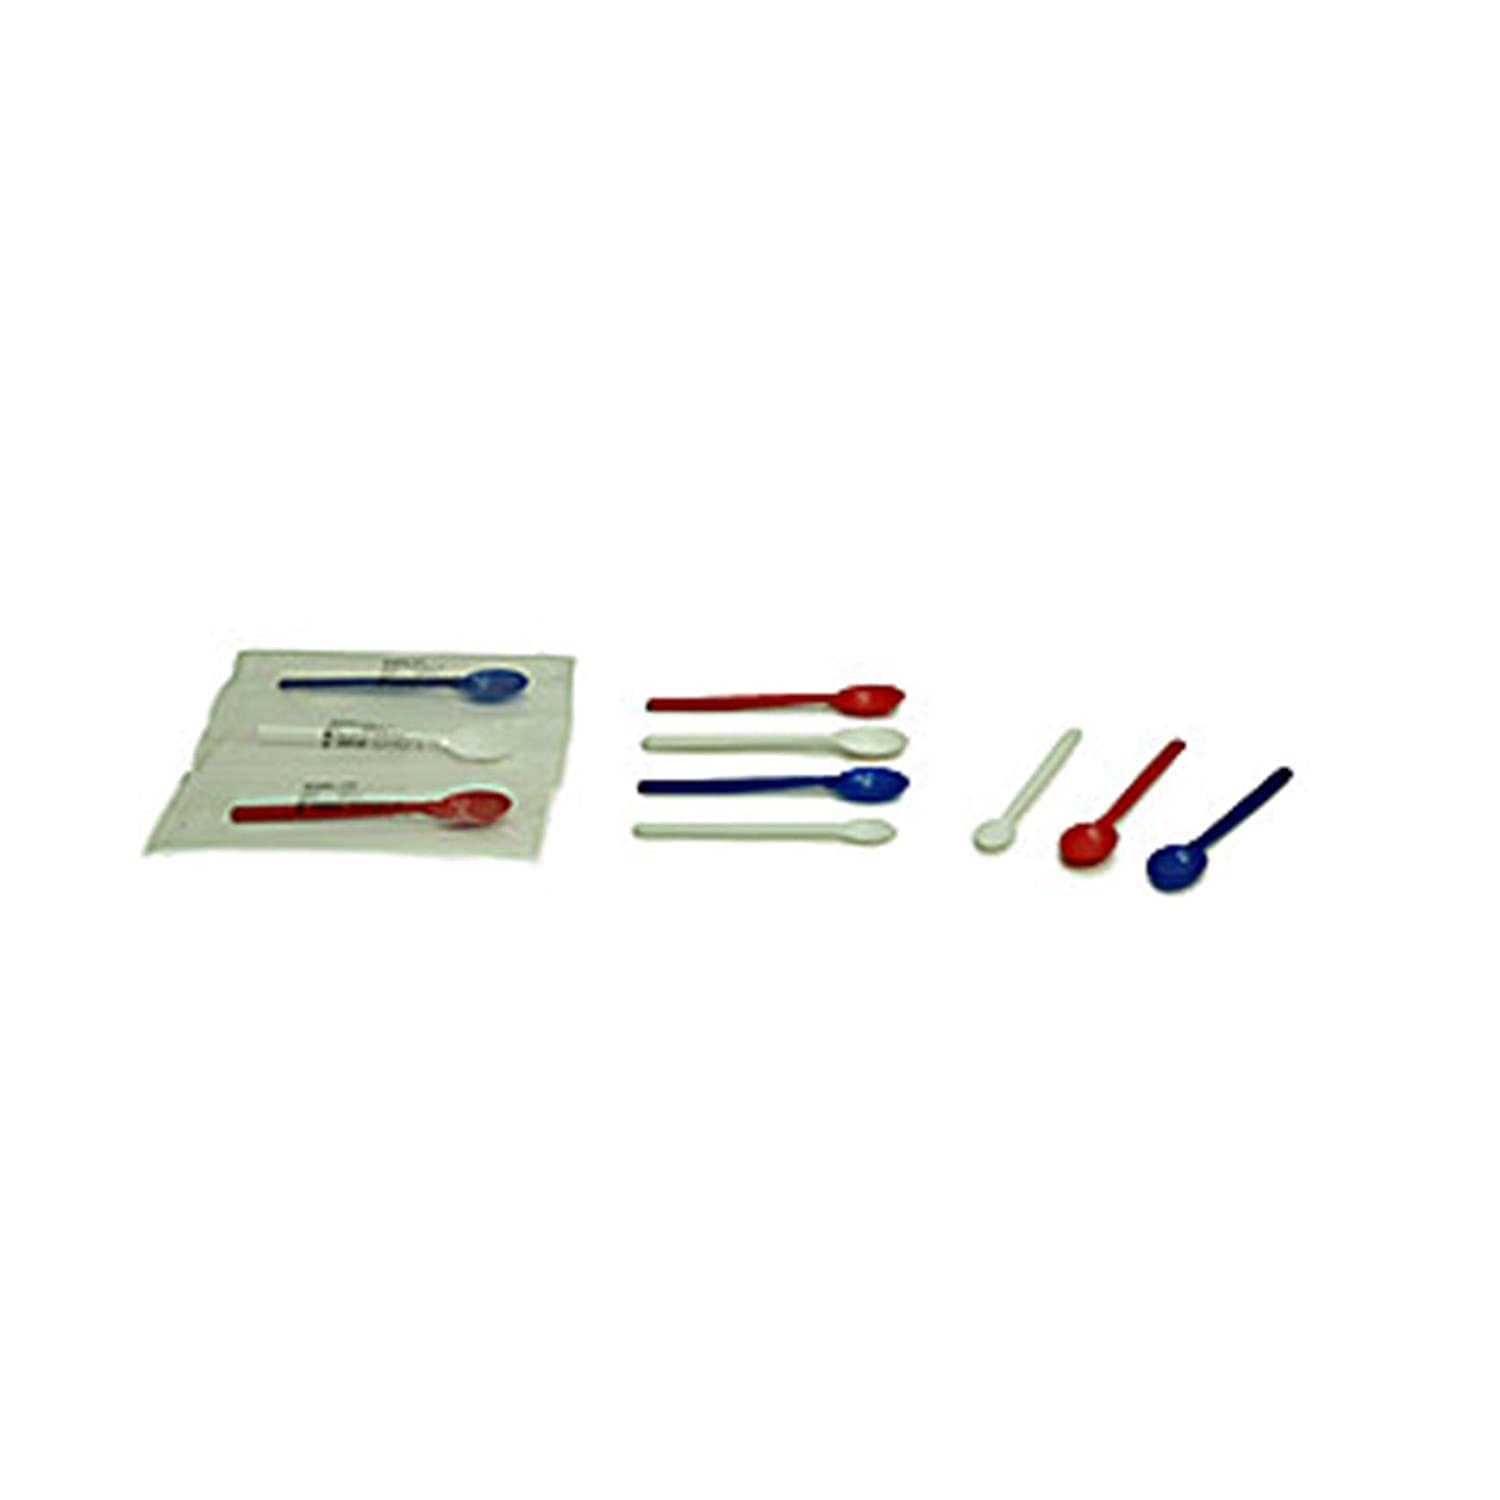 Sampling Systems 8088A-03 SteriWare Disposable Sample Spoon, Non-Sterile, Individually Bagged, 173 mm Length, 3 ml, White (Pack of 100)